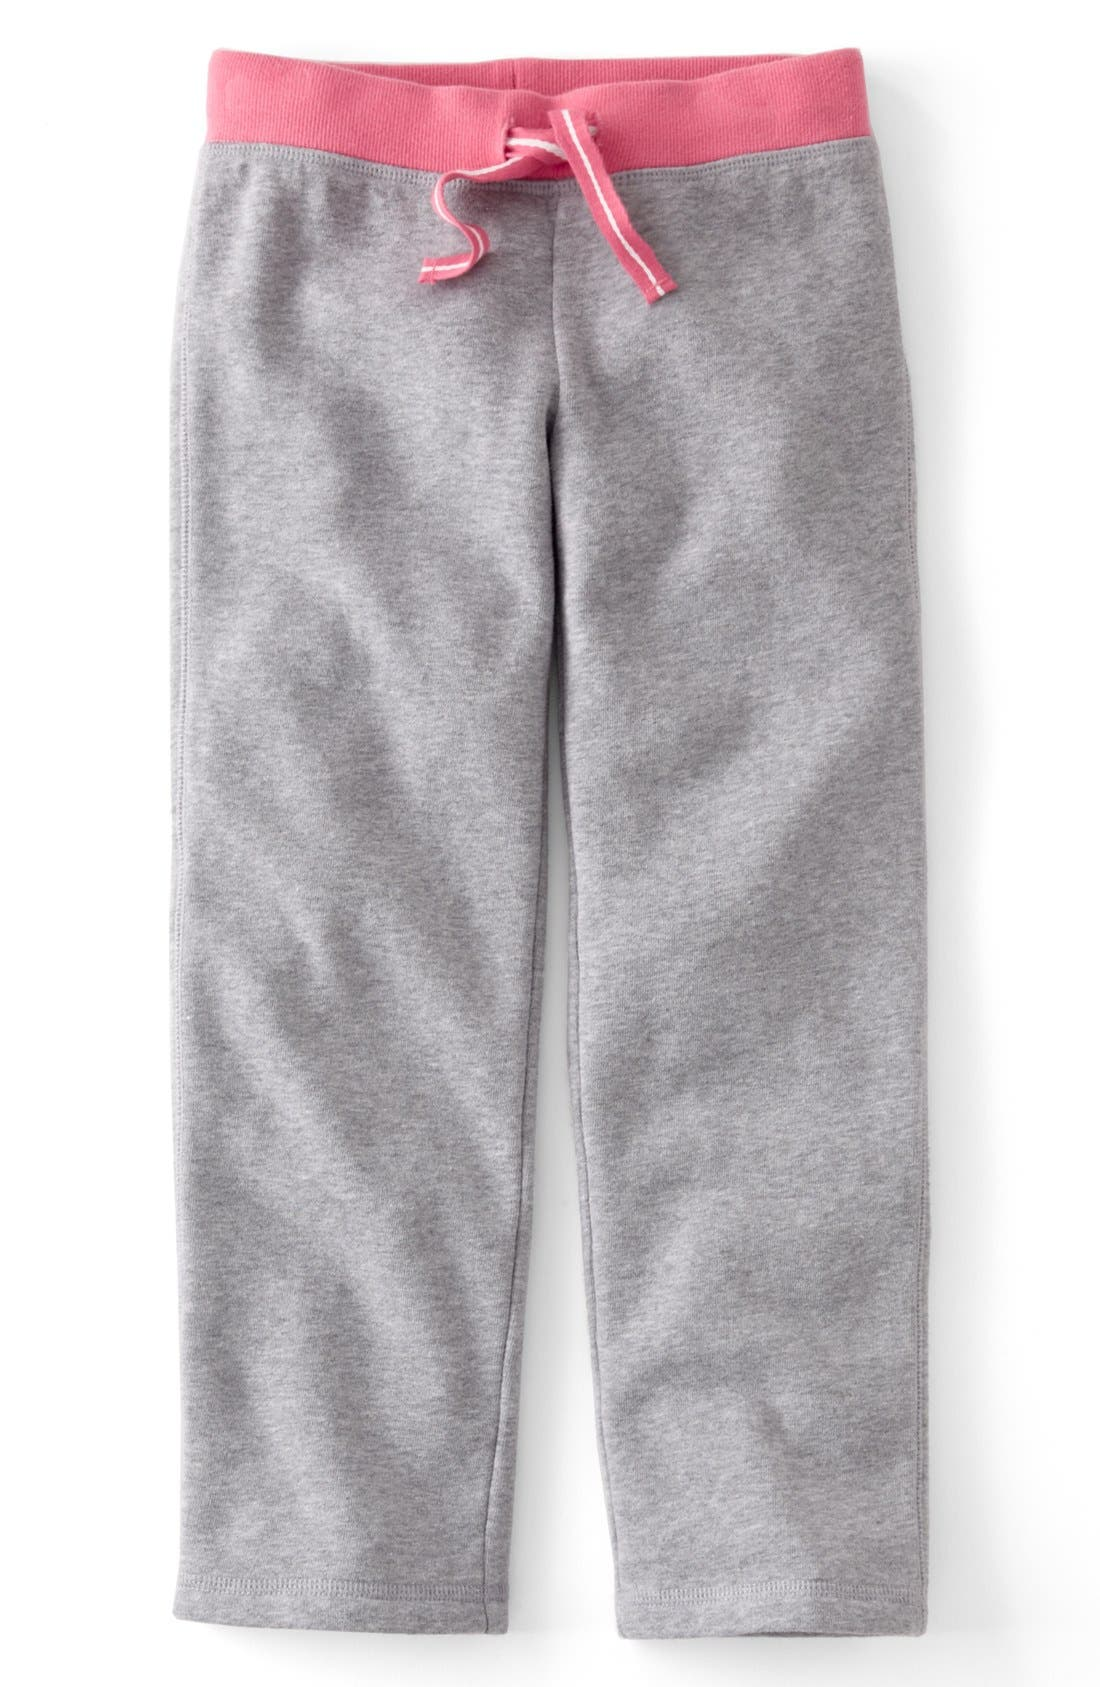 Alternate Image 1 Selected - Mini Boden 'Essential' Sweatpants (Toddler Girls, Little Girls & Big Girls)